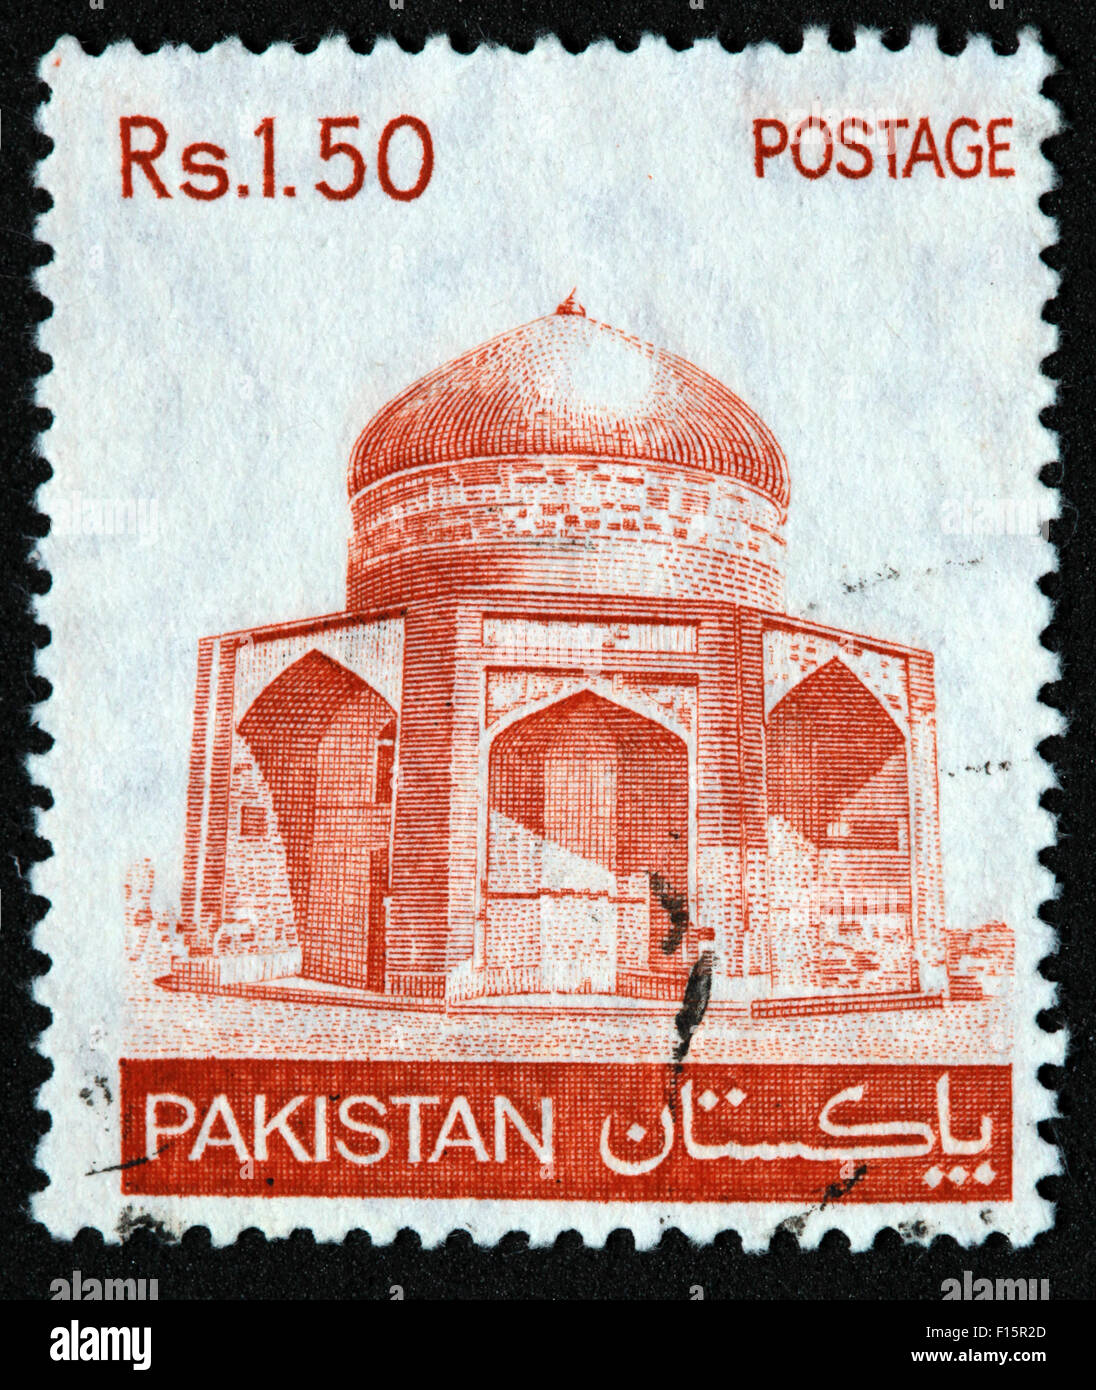 Pakistan Postage Rs1-50 rs brown mosque Stamp - Stock Image